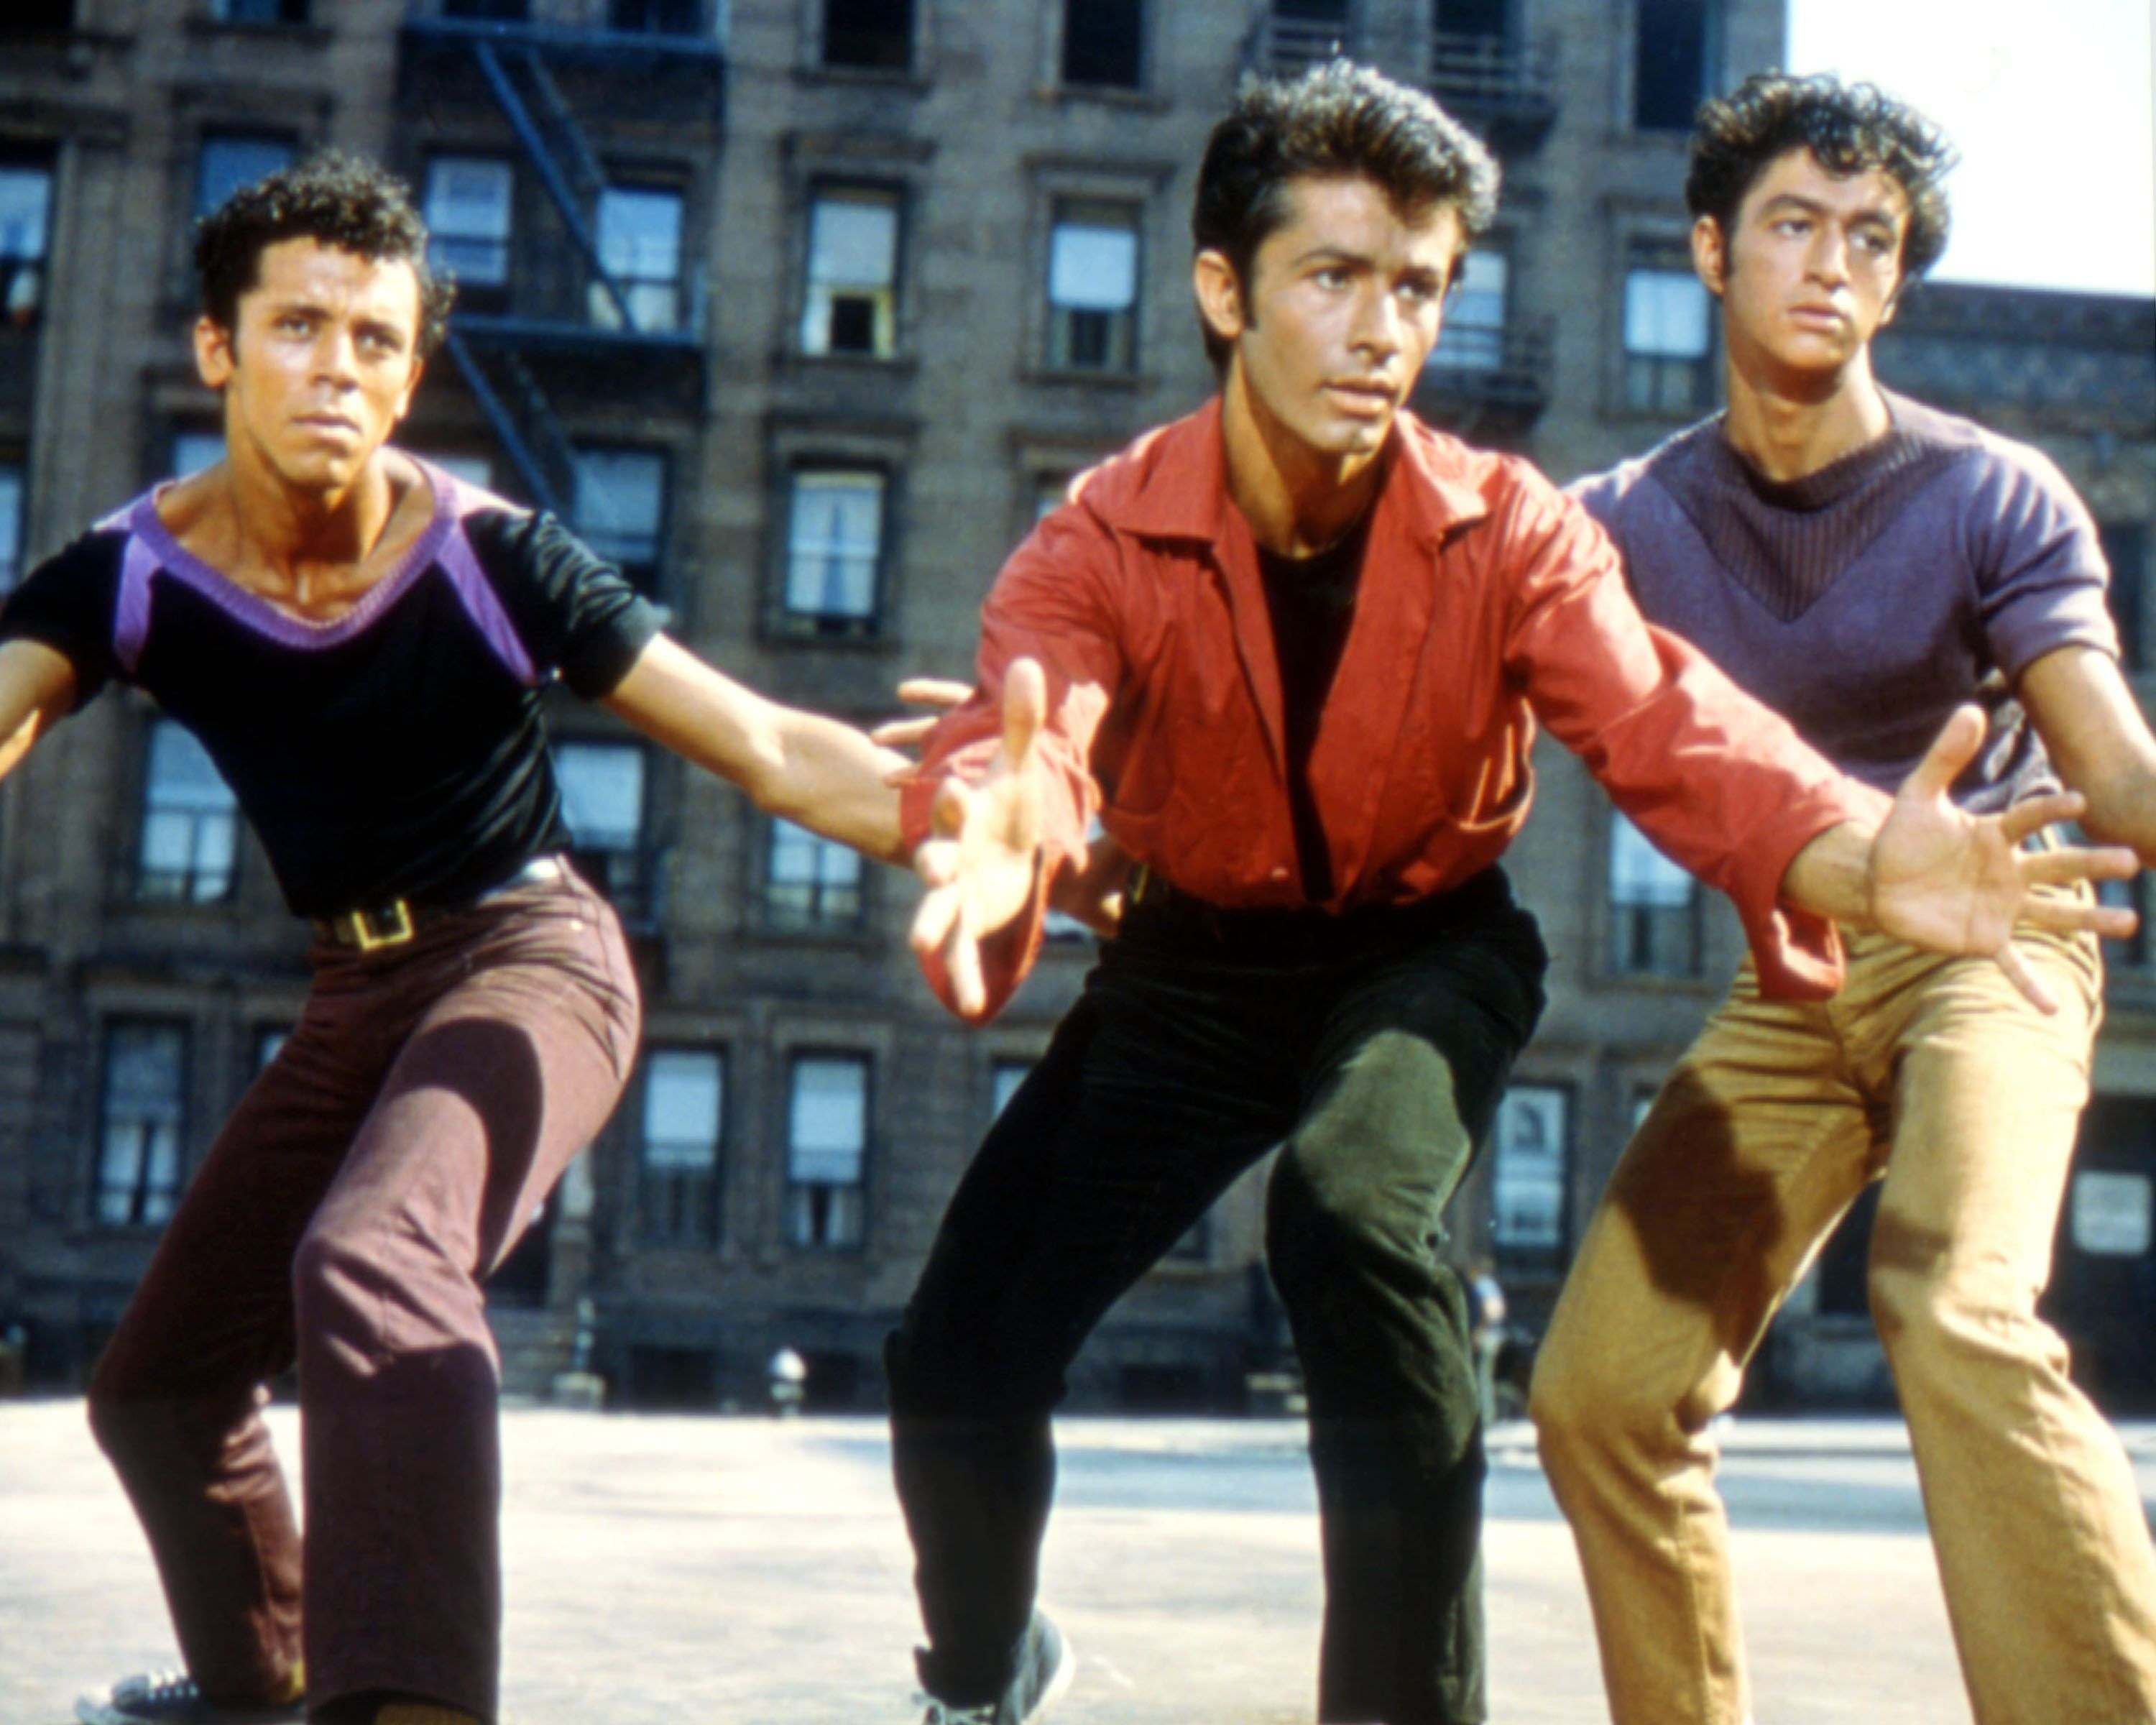 George Chakiris (centre), US actor, in a publicity image issued for the film adaptation of 'West Side Story', USA, 1961. The musical, directed by Jerome Robbins (1918-1998) and Robert Wise (1914-2005), starred, Chakiris as 'Bernardo Nunez'. (Photo by Silver Screen Collection/Getty Images)